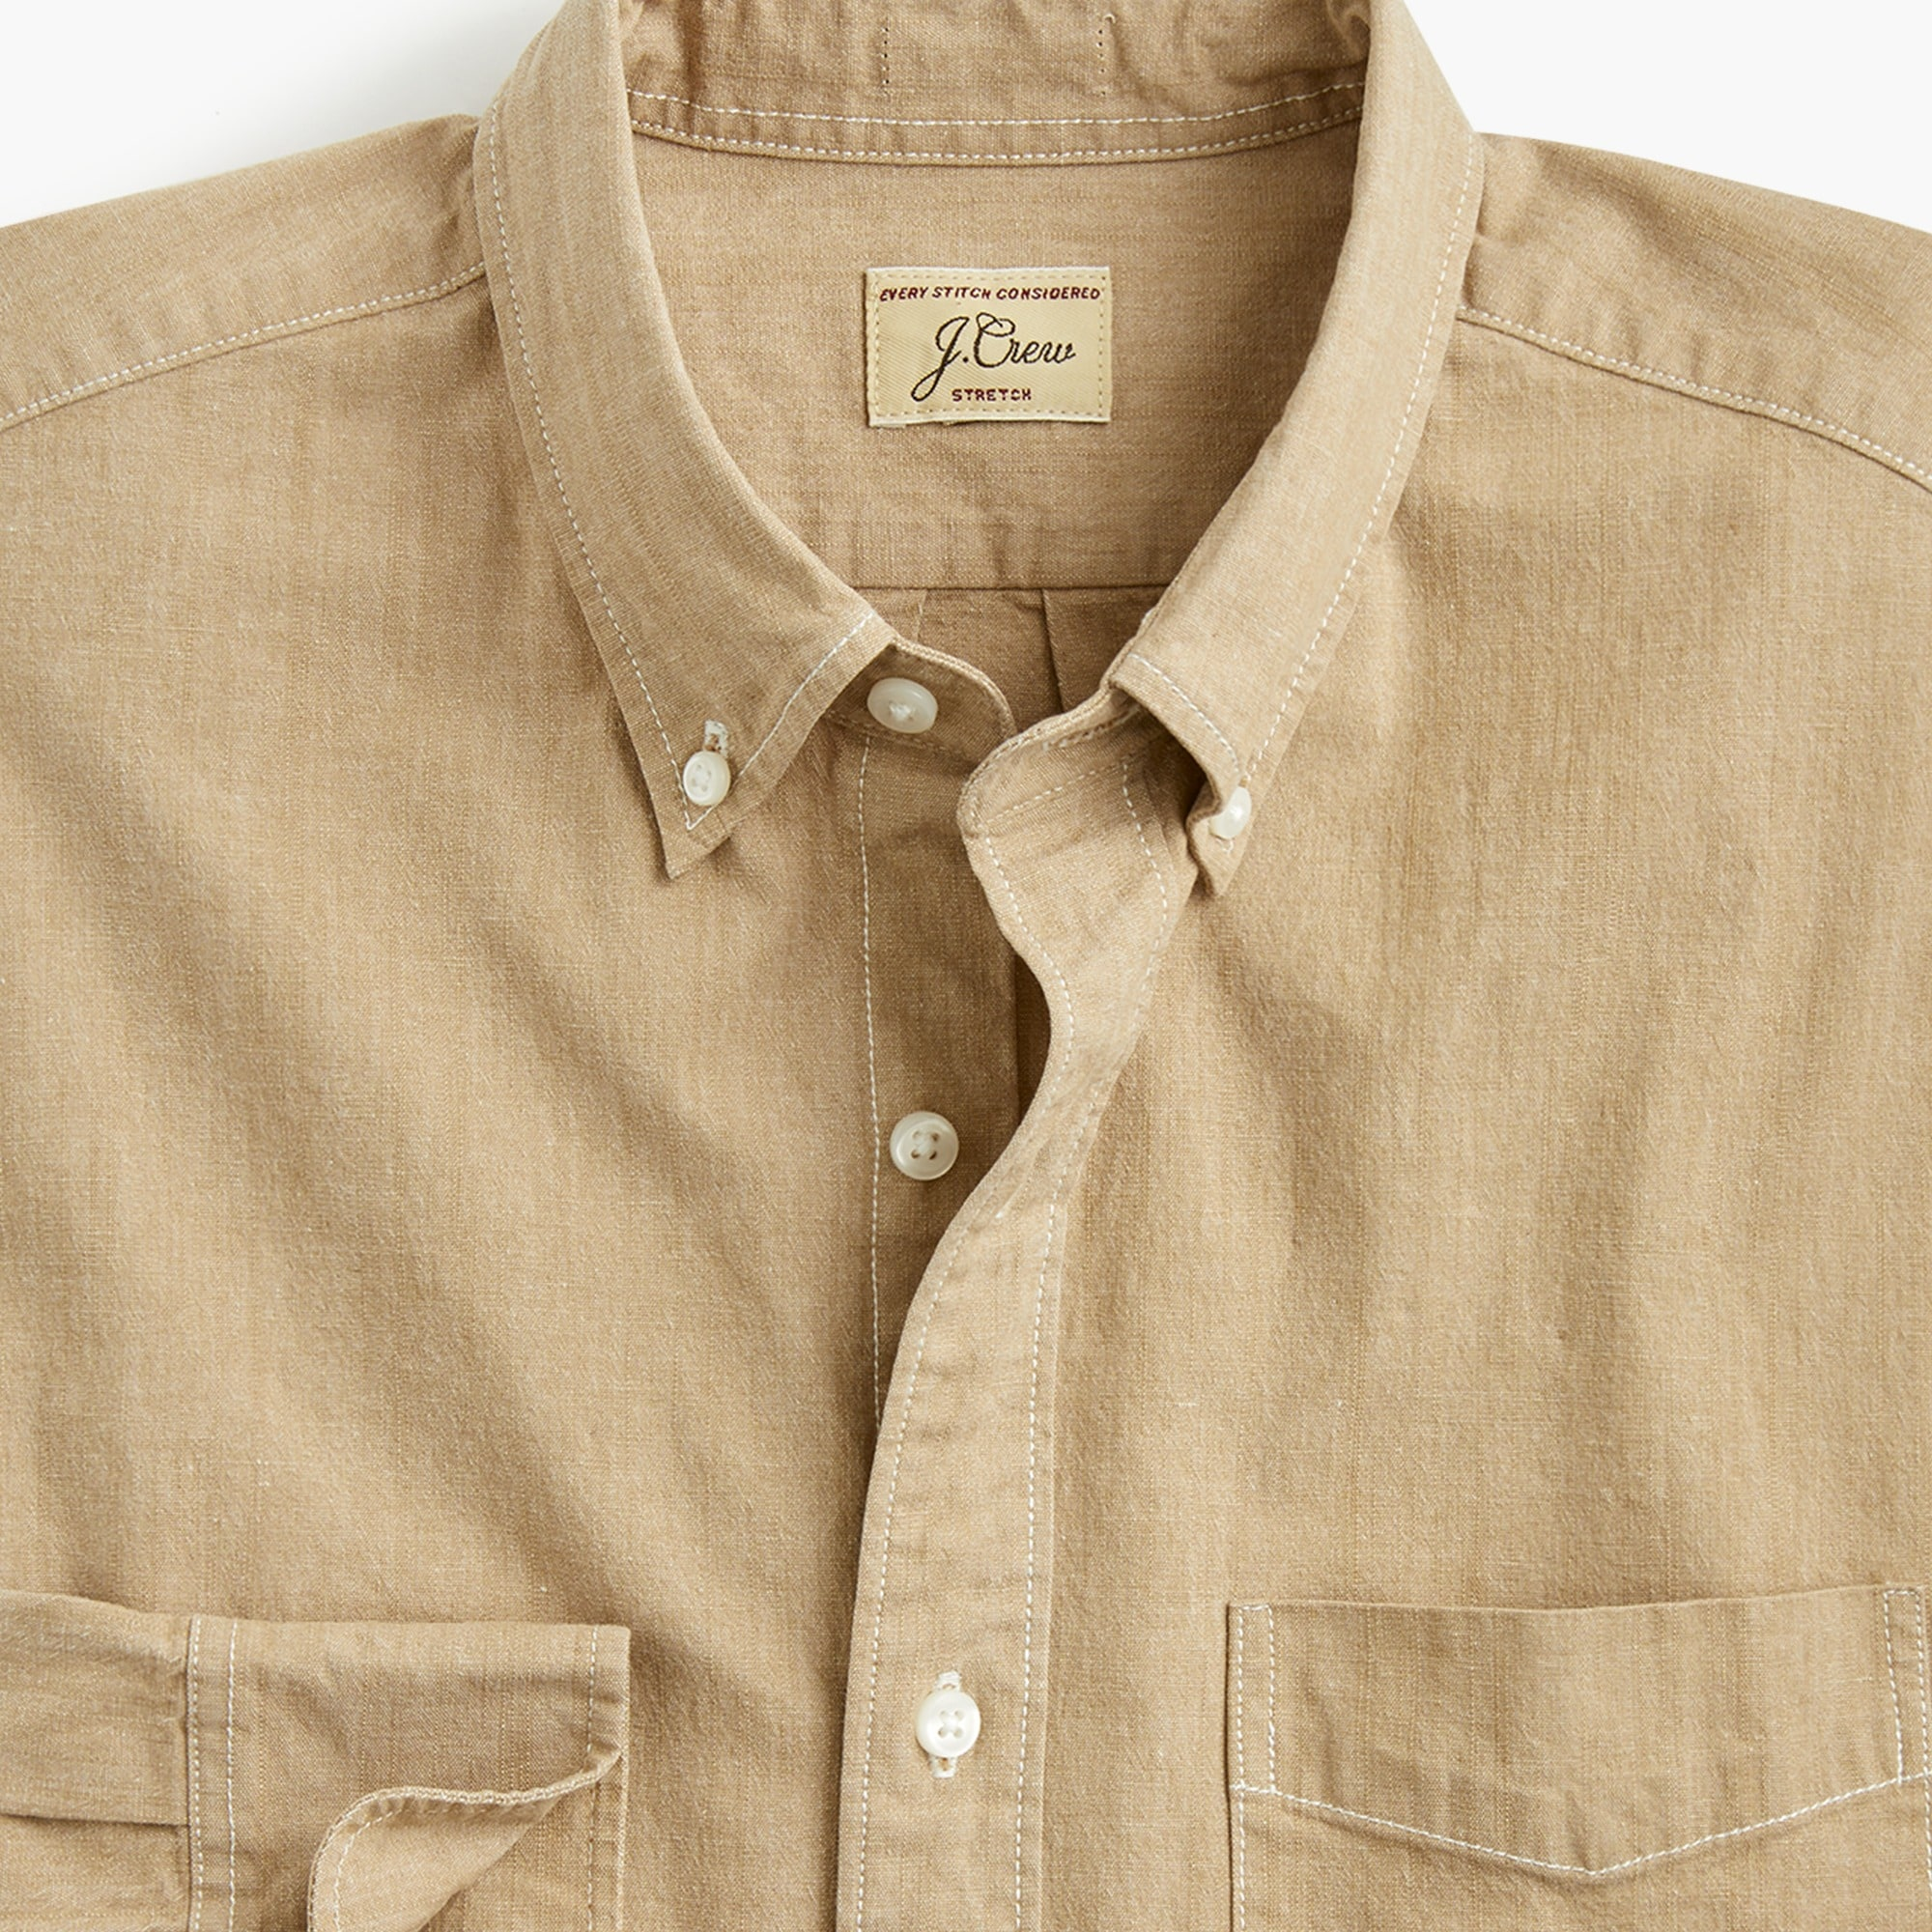 Image 3 for Tall stretch one-pocket chambray shirt